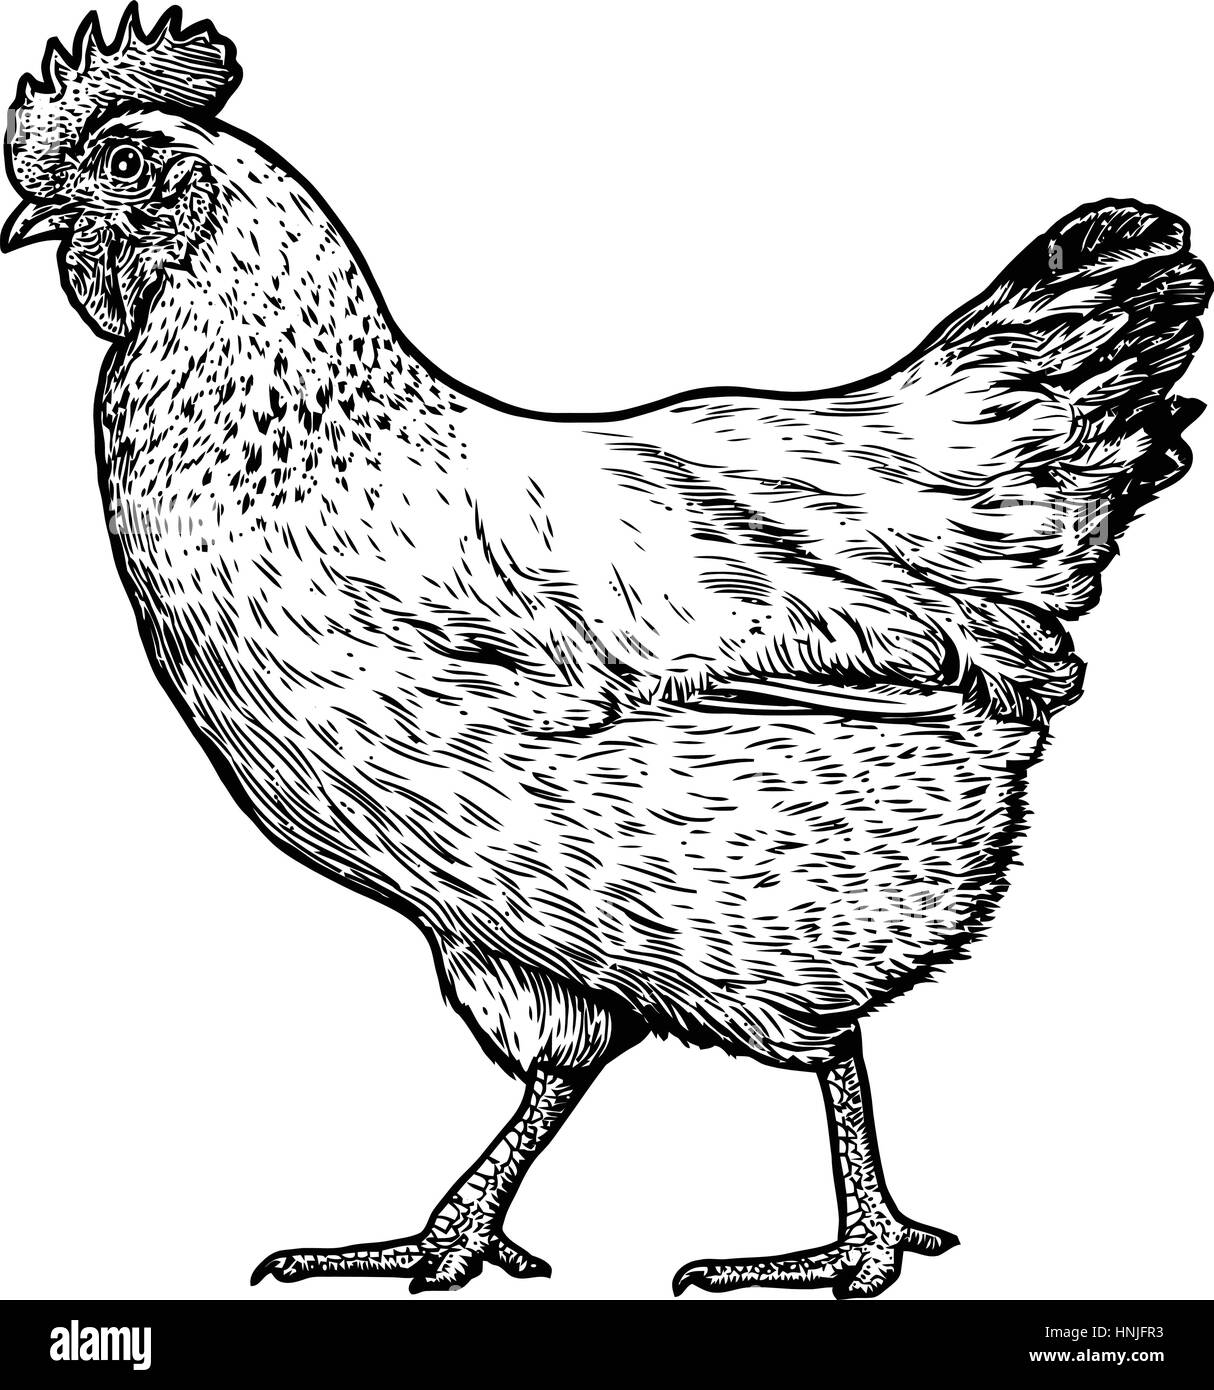 chicken illustration drawing engraving line art realistic